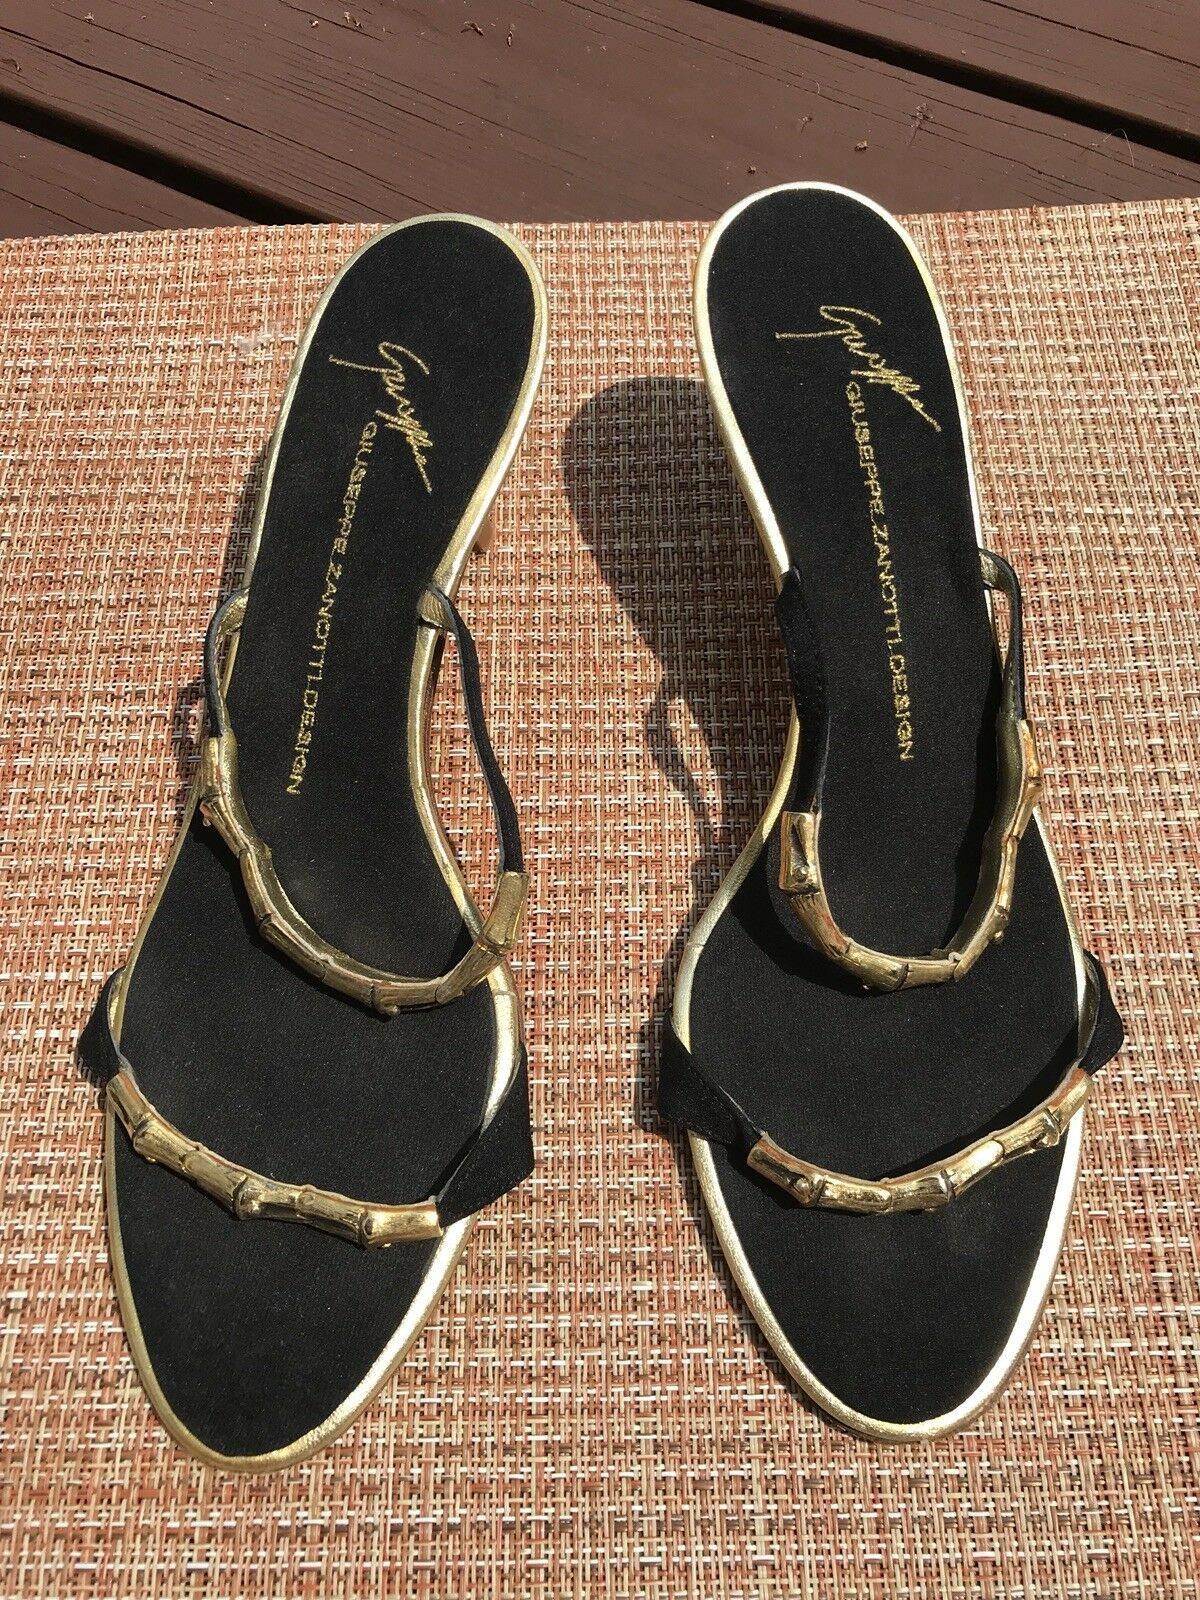 Giuseppe zanotti 39 Black Metallic gold gold gold Sandals fb1cca